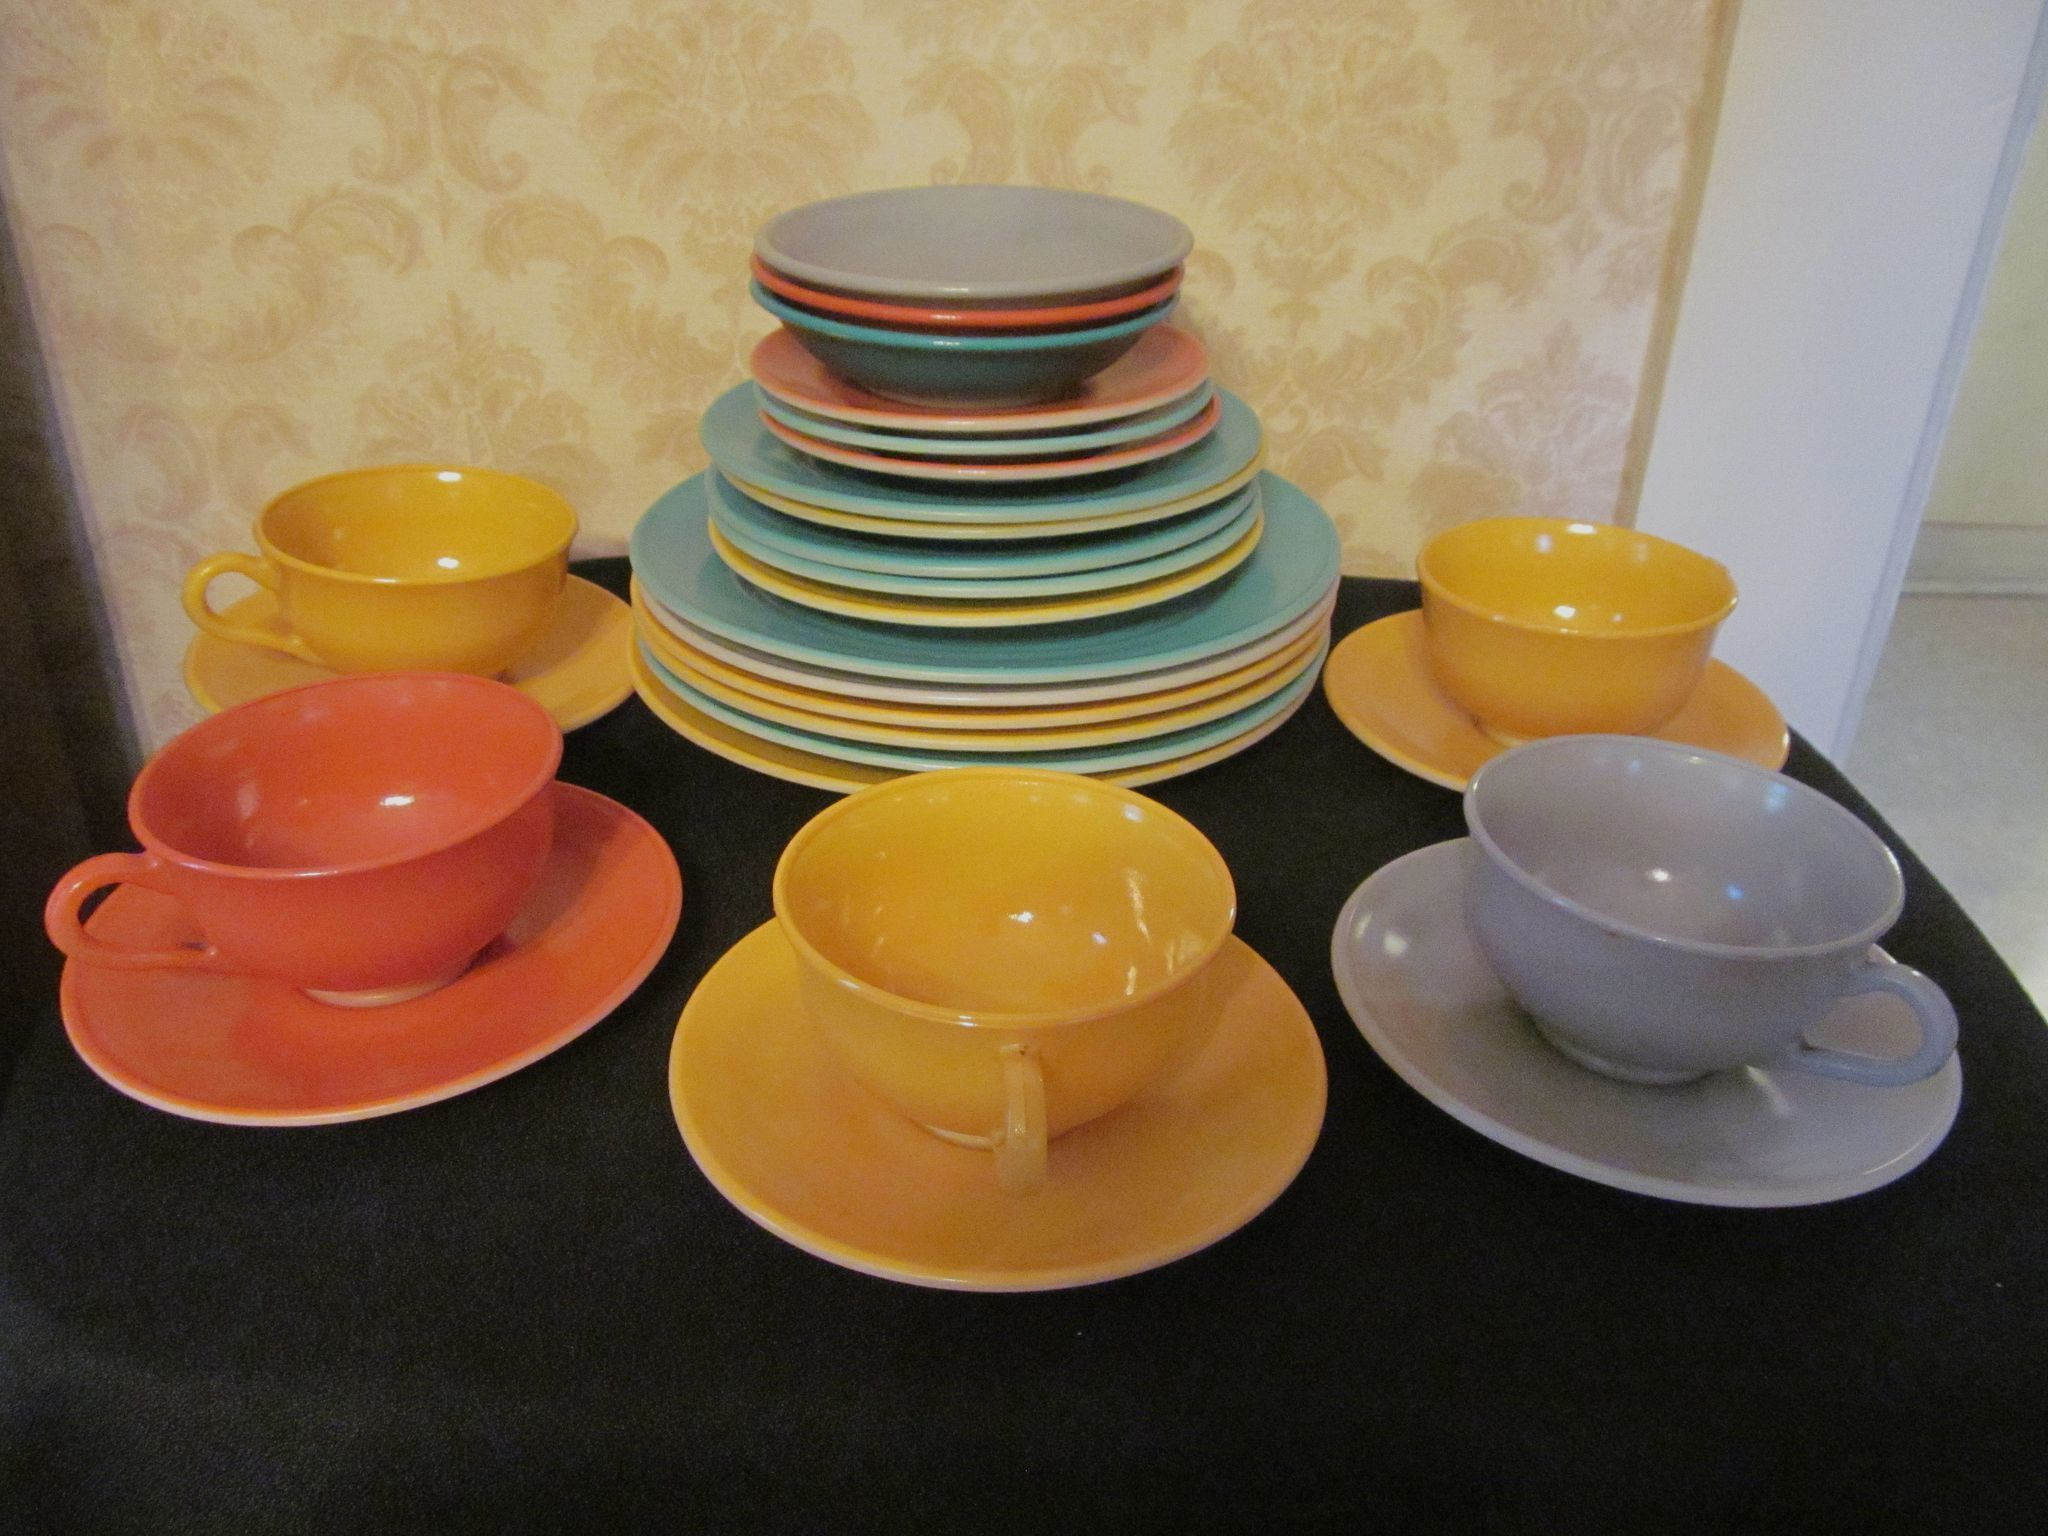 Hazel Atlas 22pc Fired On Platonite Dinnerware, Plates, Bowls, Cups & Saucers